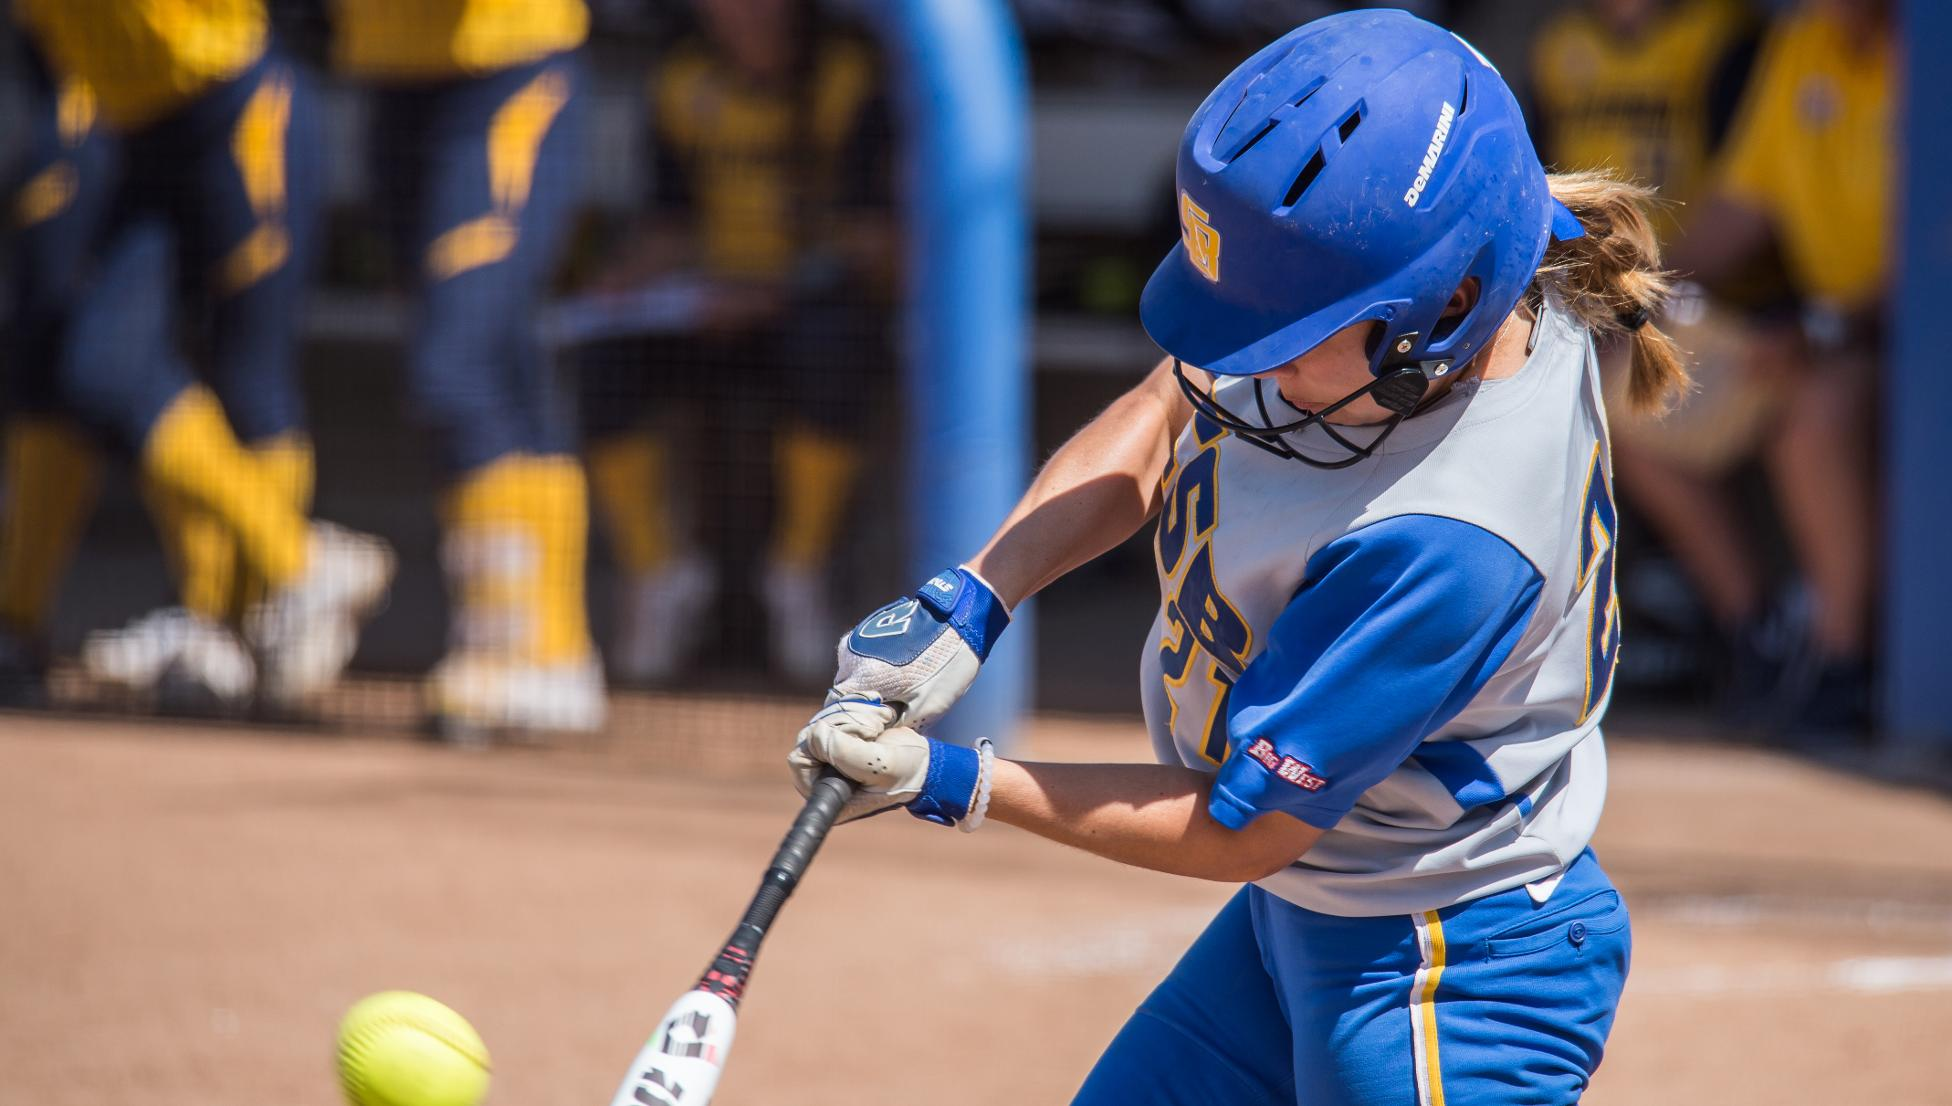 Palomares Hits Game-Winning Home Run, Gauchos Split Doubleheader with Long Beach State